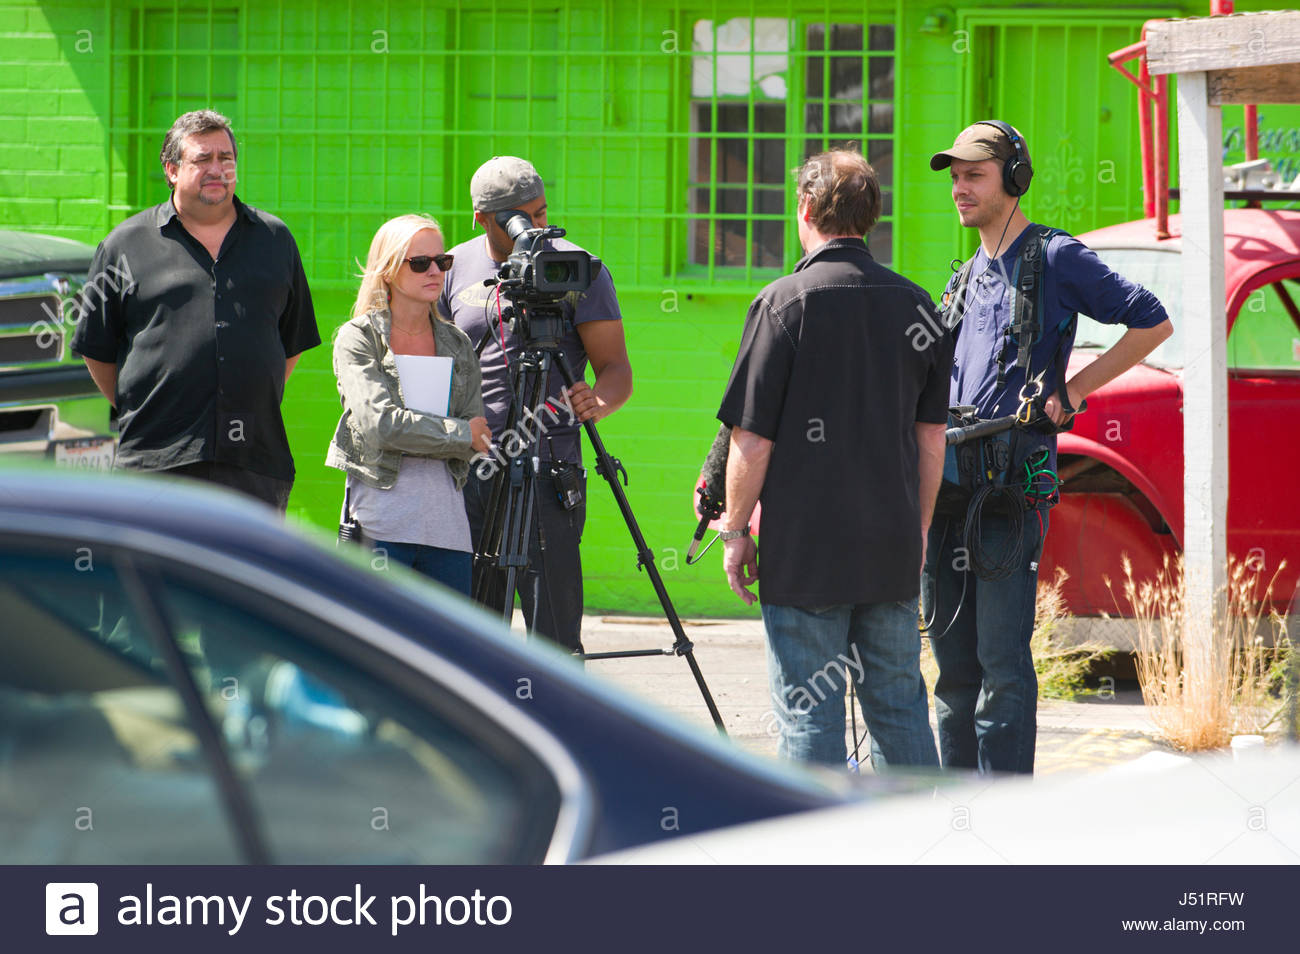 Film Crew Working In Parking Lot Of Gold Silver Pawn Shop Made